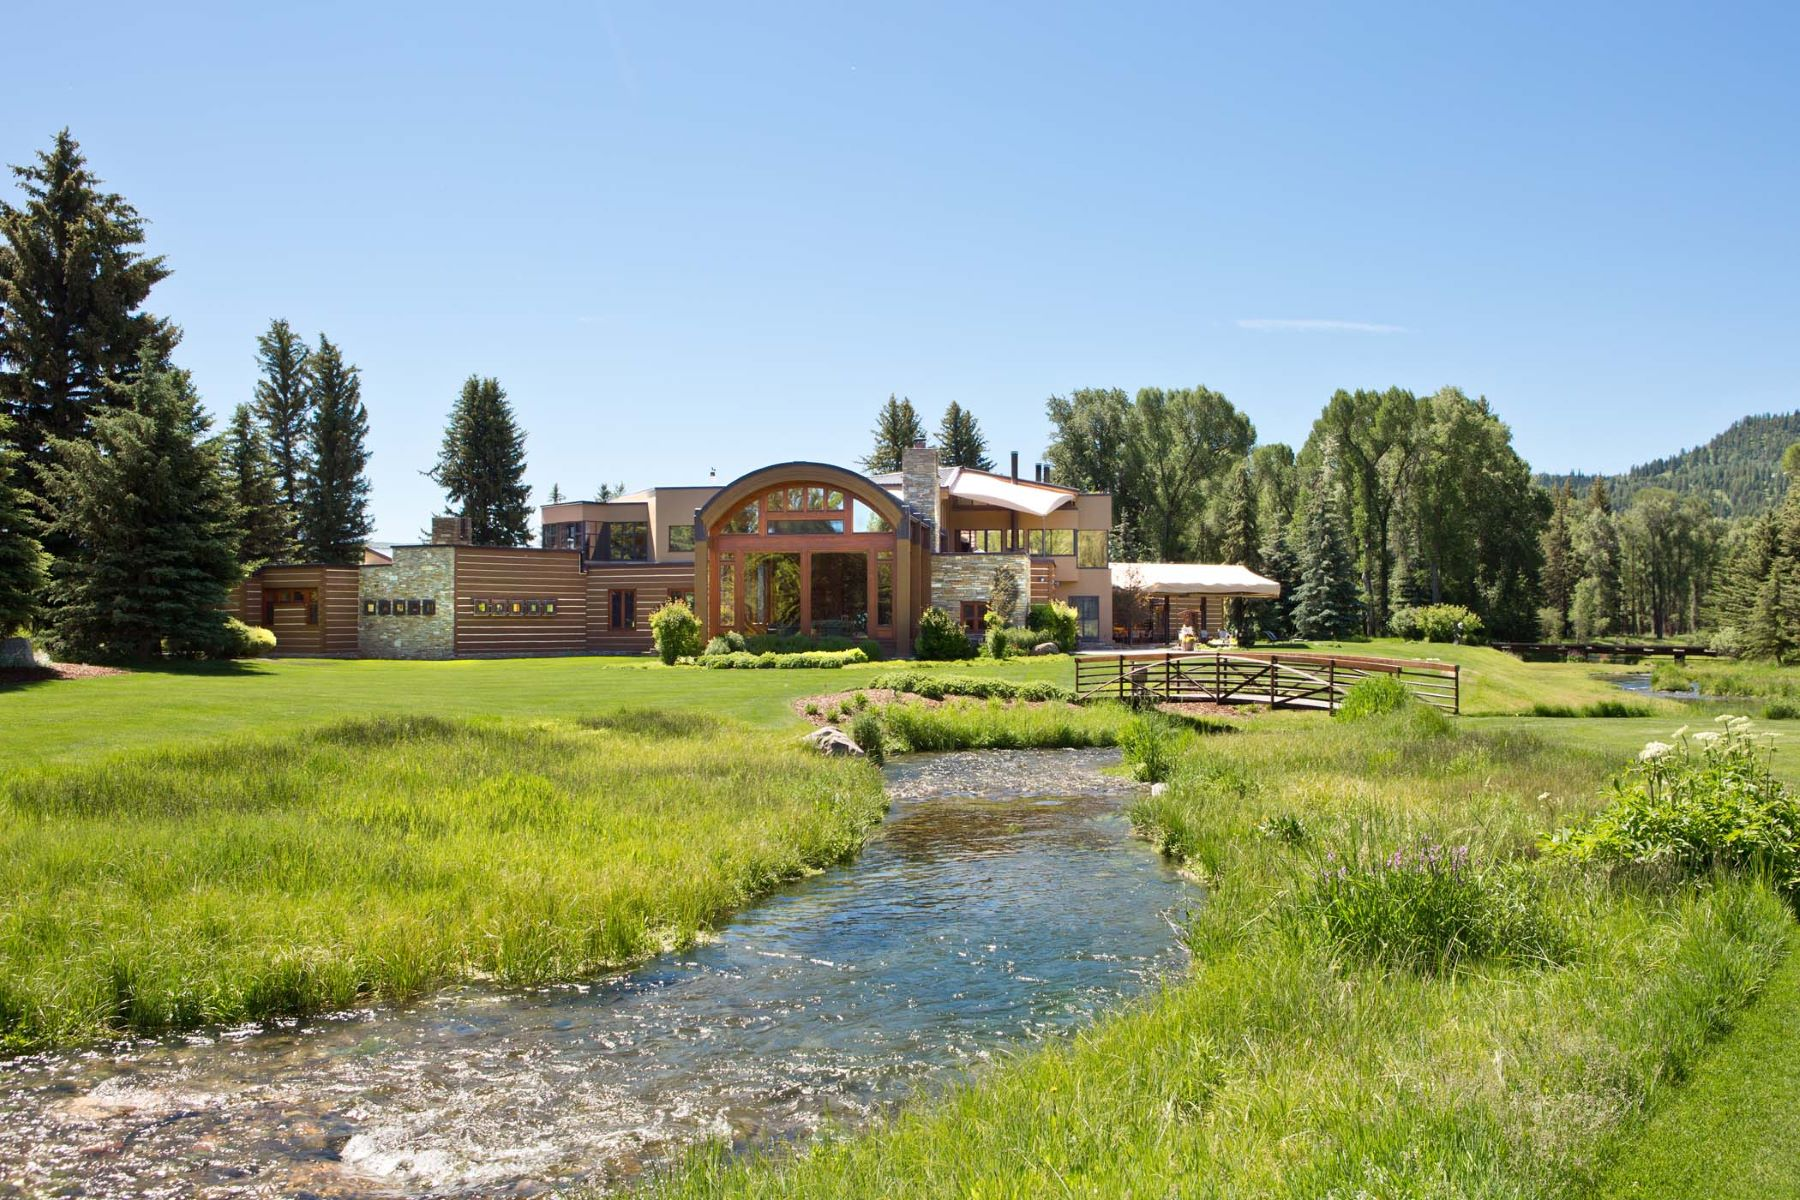 Single Family Home for Sale at Creekside Elegance Jackson, Wyoming, 83001 Jackson Hole, United States